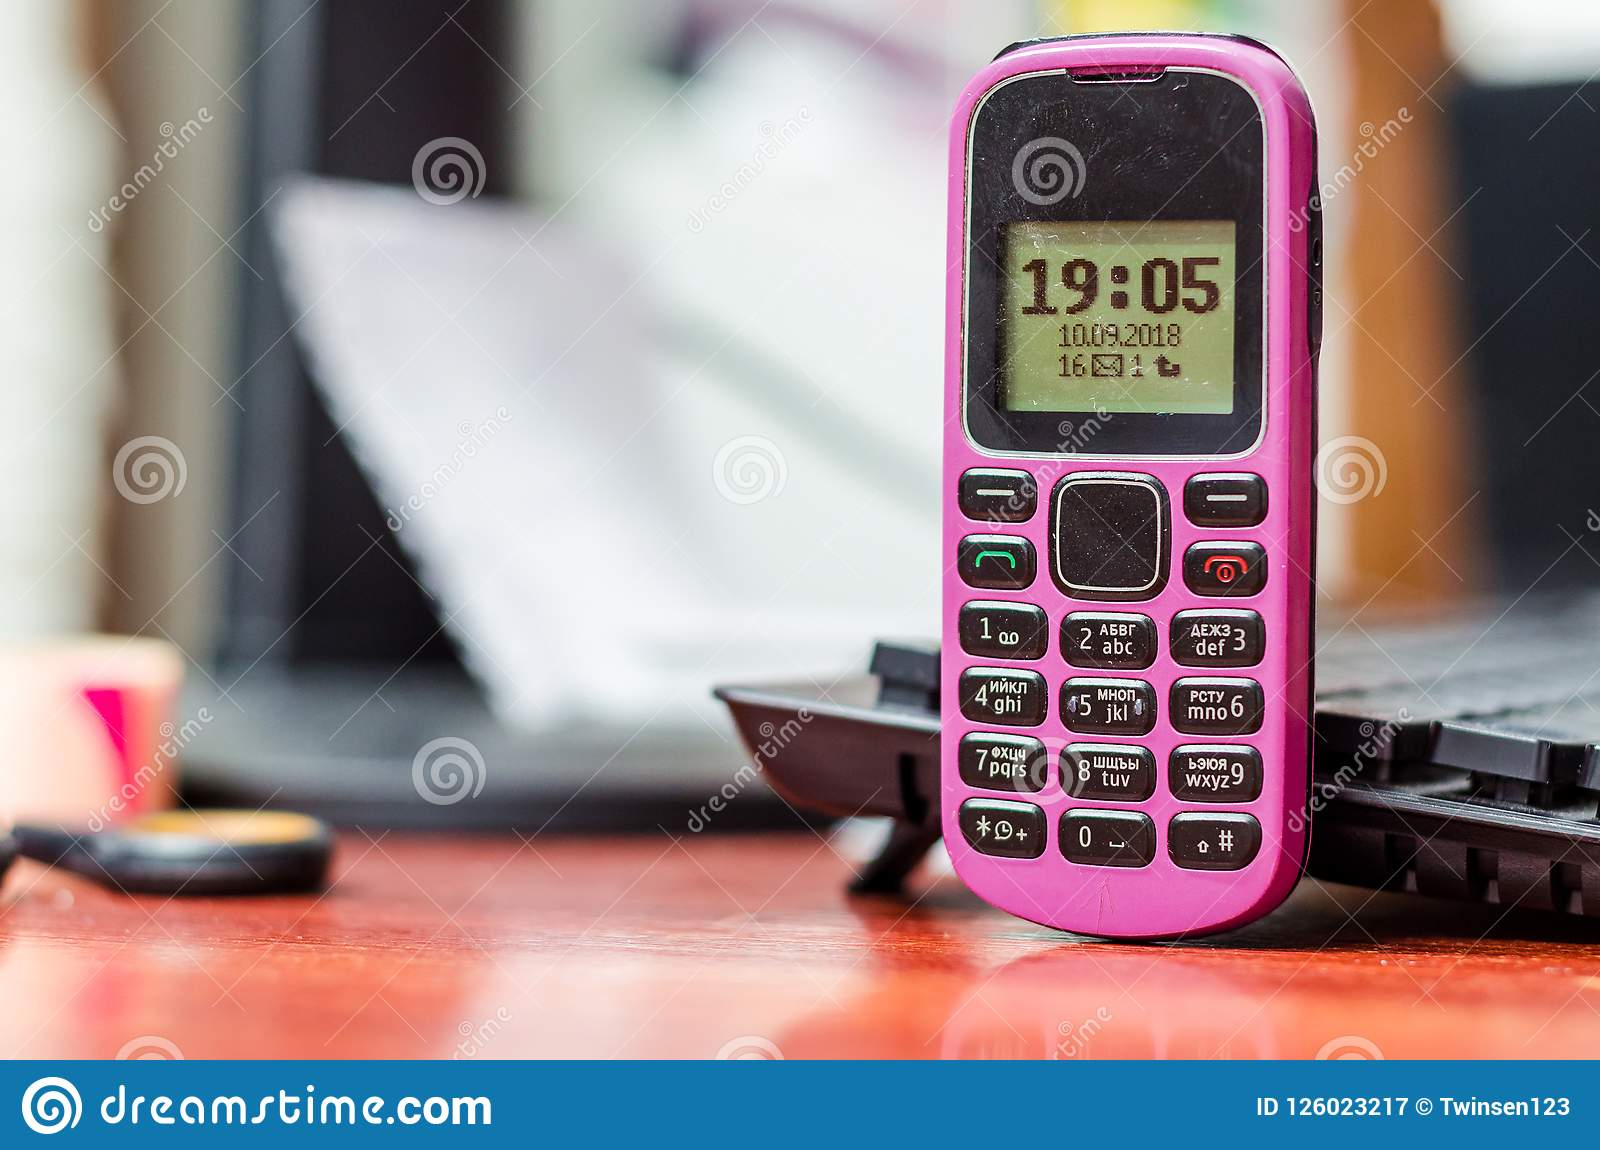 old button mobile phone pink color on the desk near a computer k